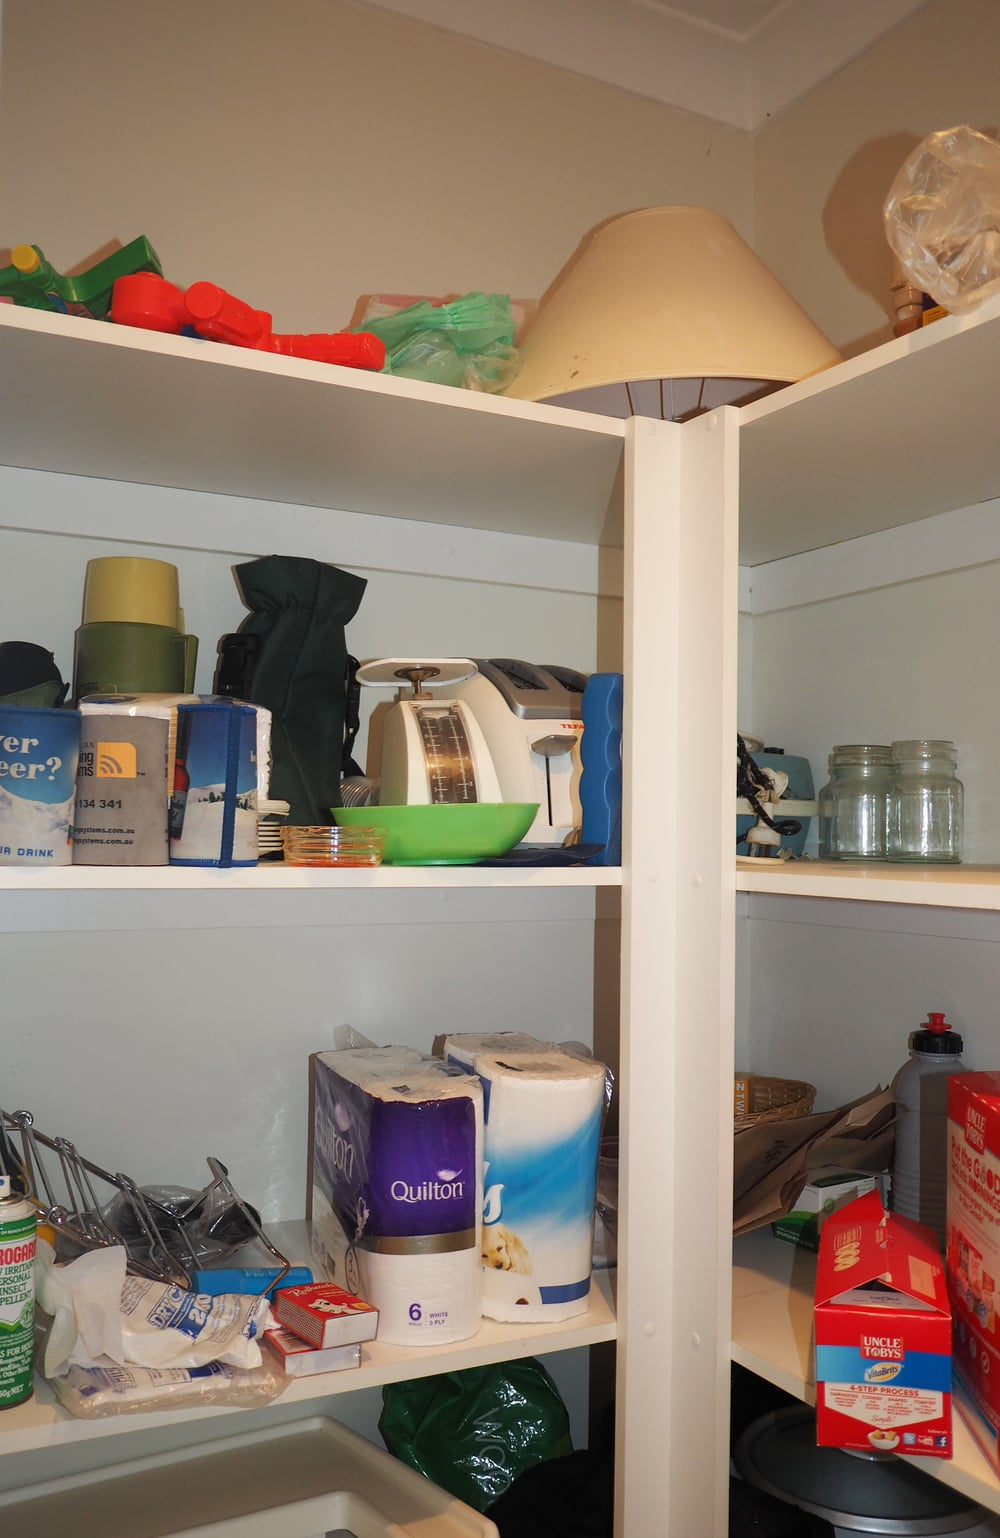 Does your pantry look like this? Cluttered, messy and disorganised? Click through to read the full pantry makeover, with organising tips and tricks for your pantry area